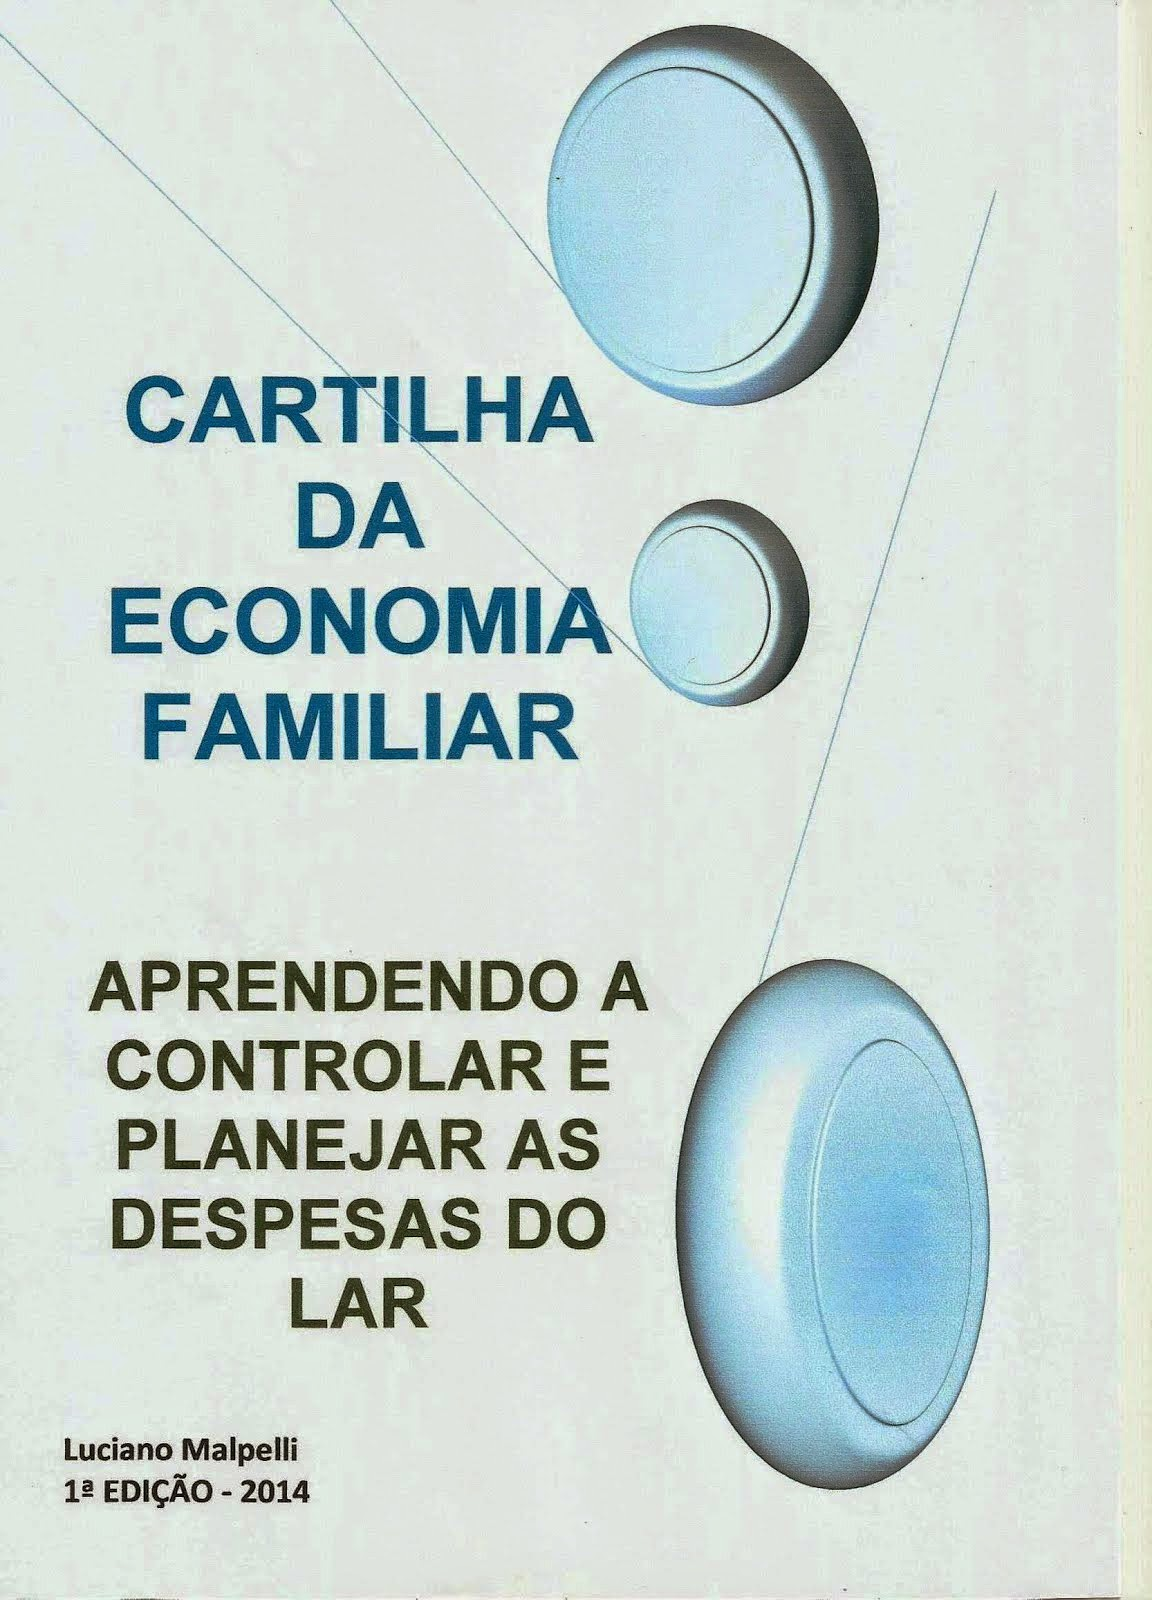 Cartilha da Economia Familiar